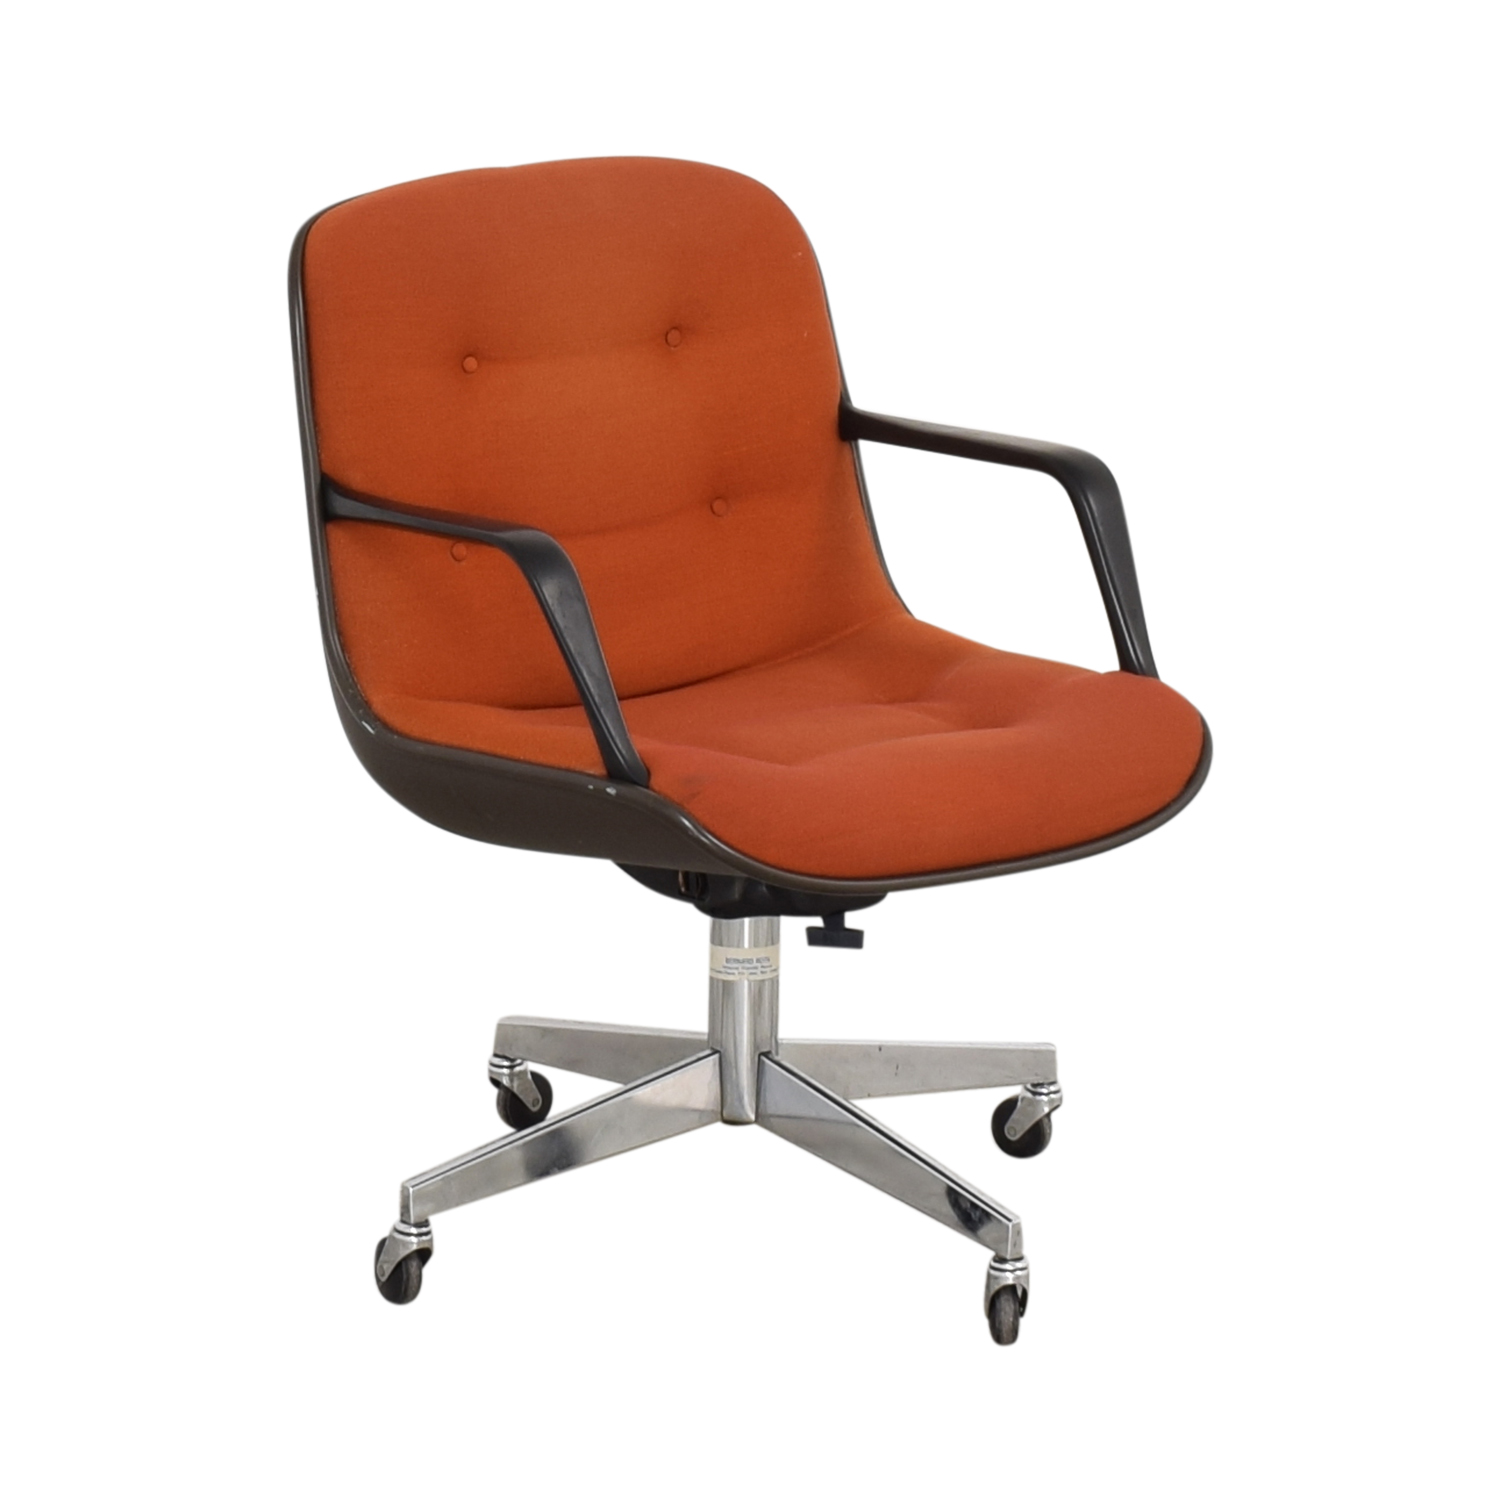 Steelcase Steelcase Mid Century Modern Office Chair coupon